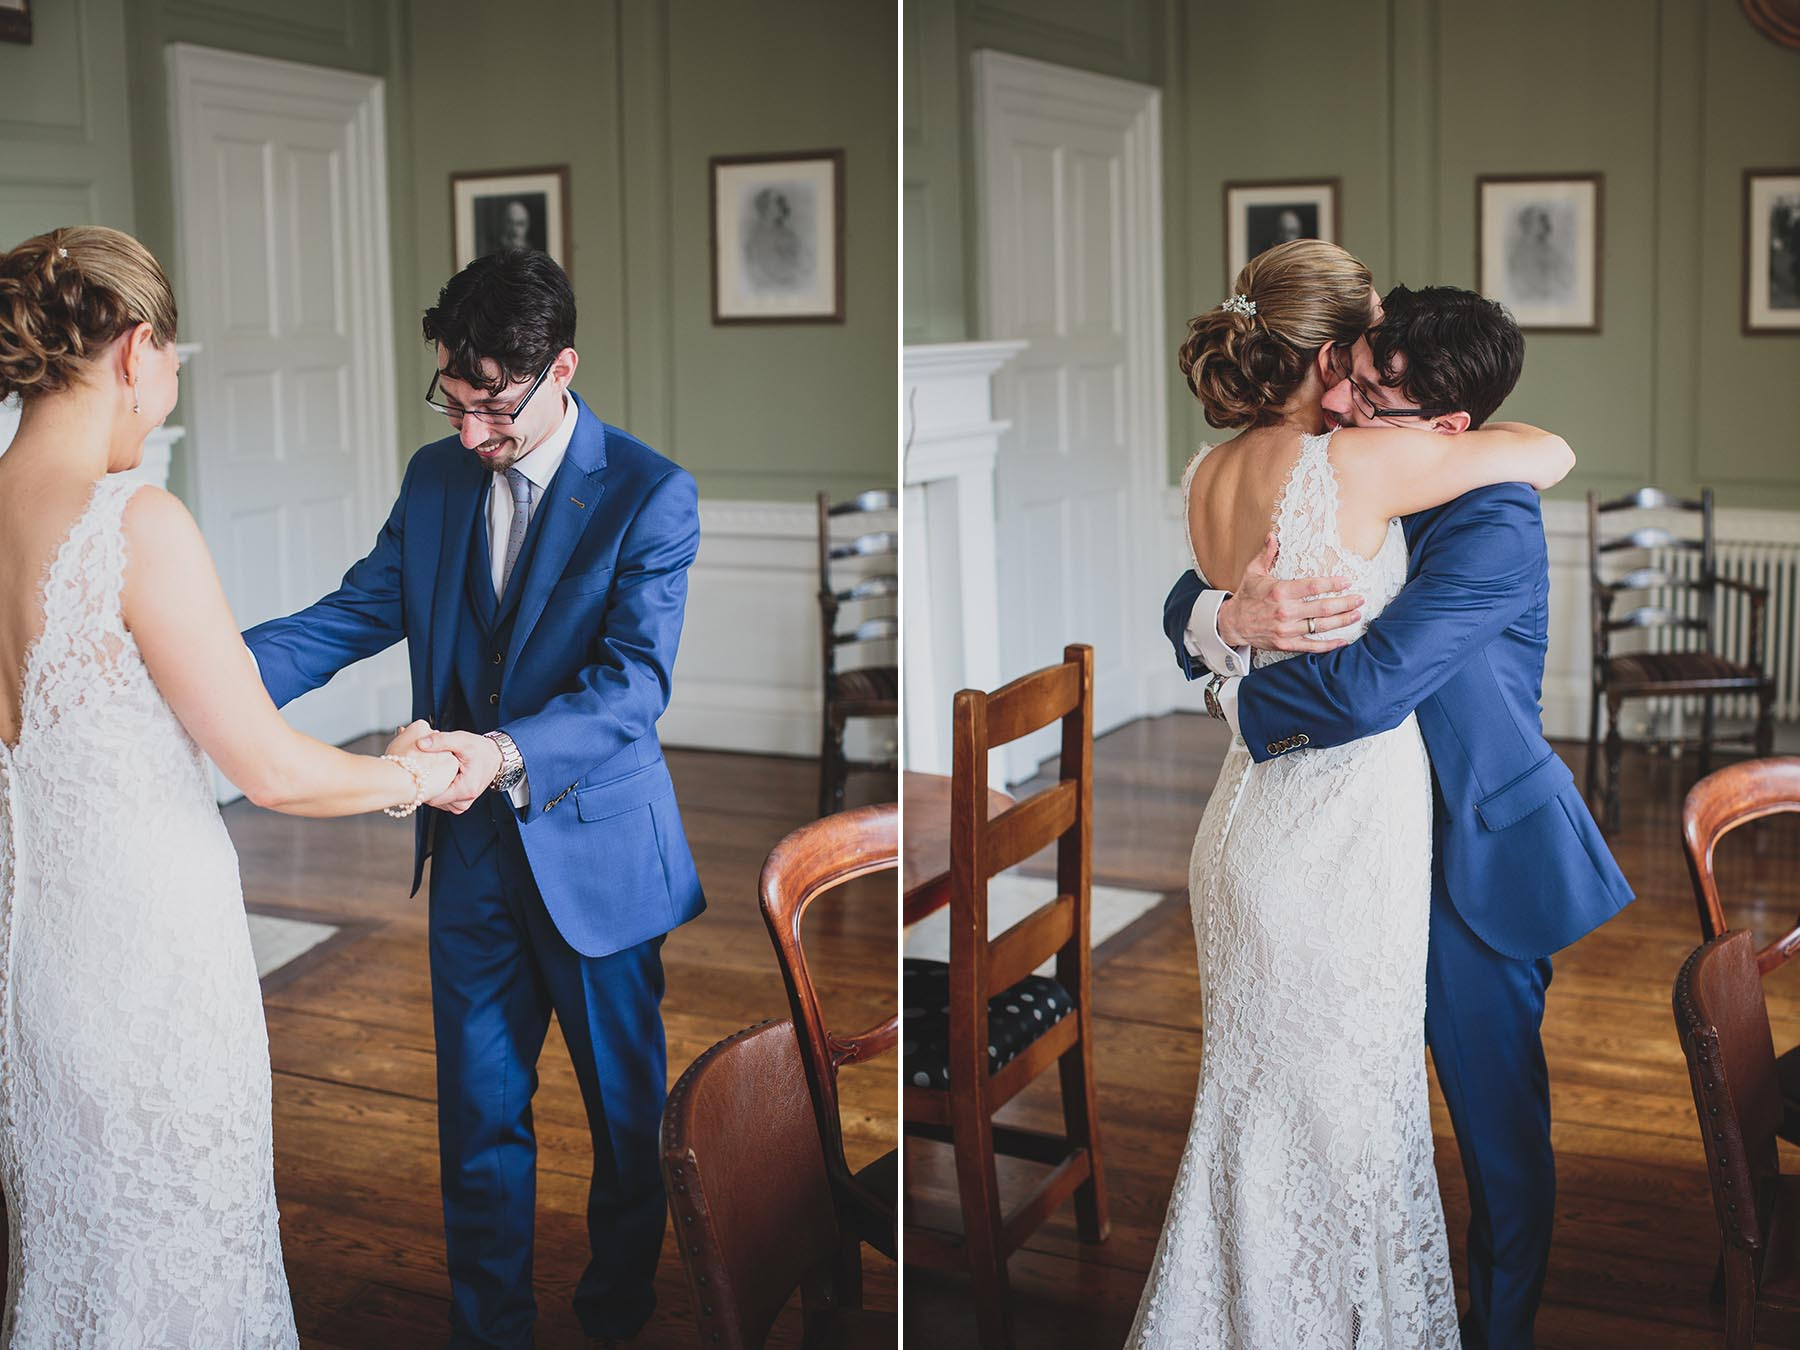 Stanmer-House-Wedding-Photography-Fazackarley-035